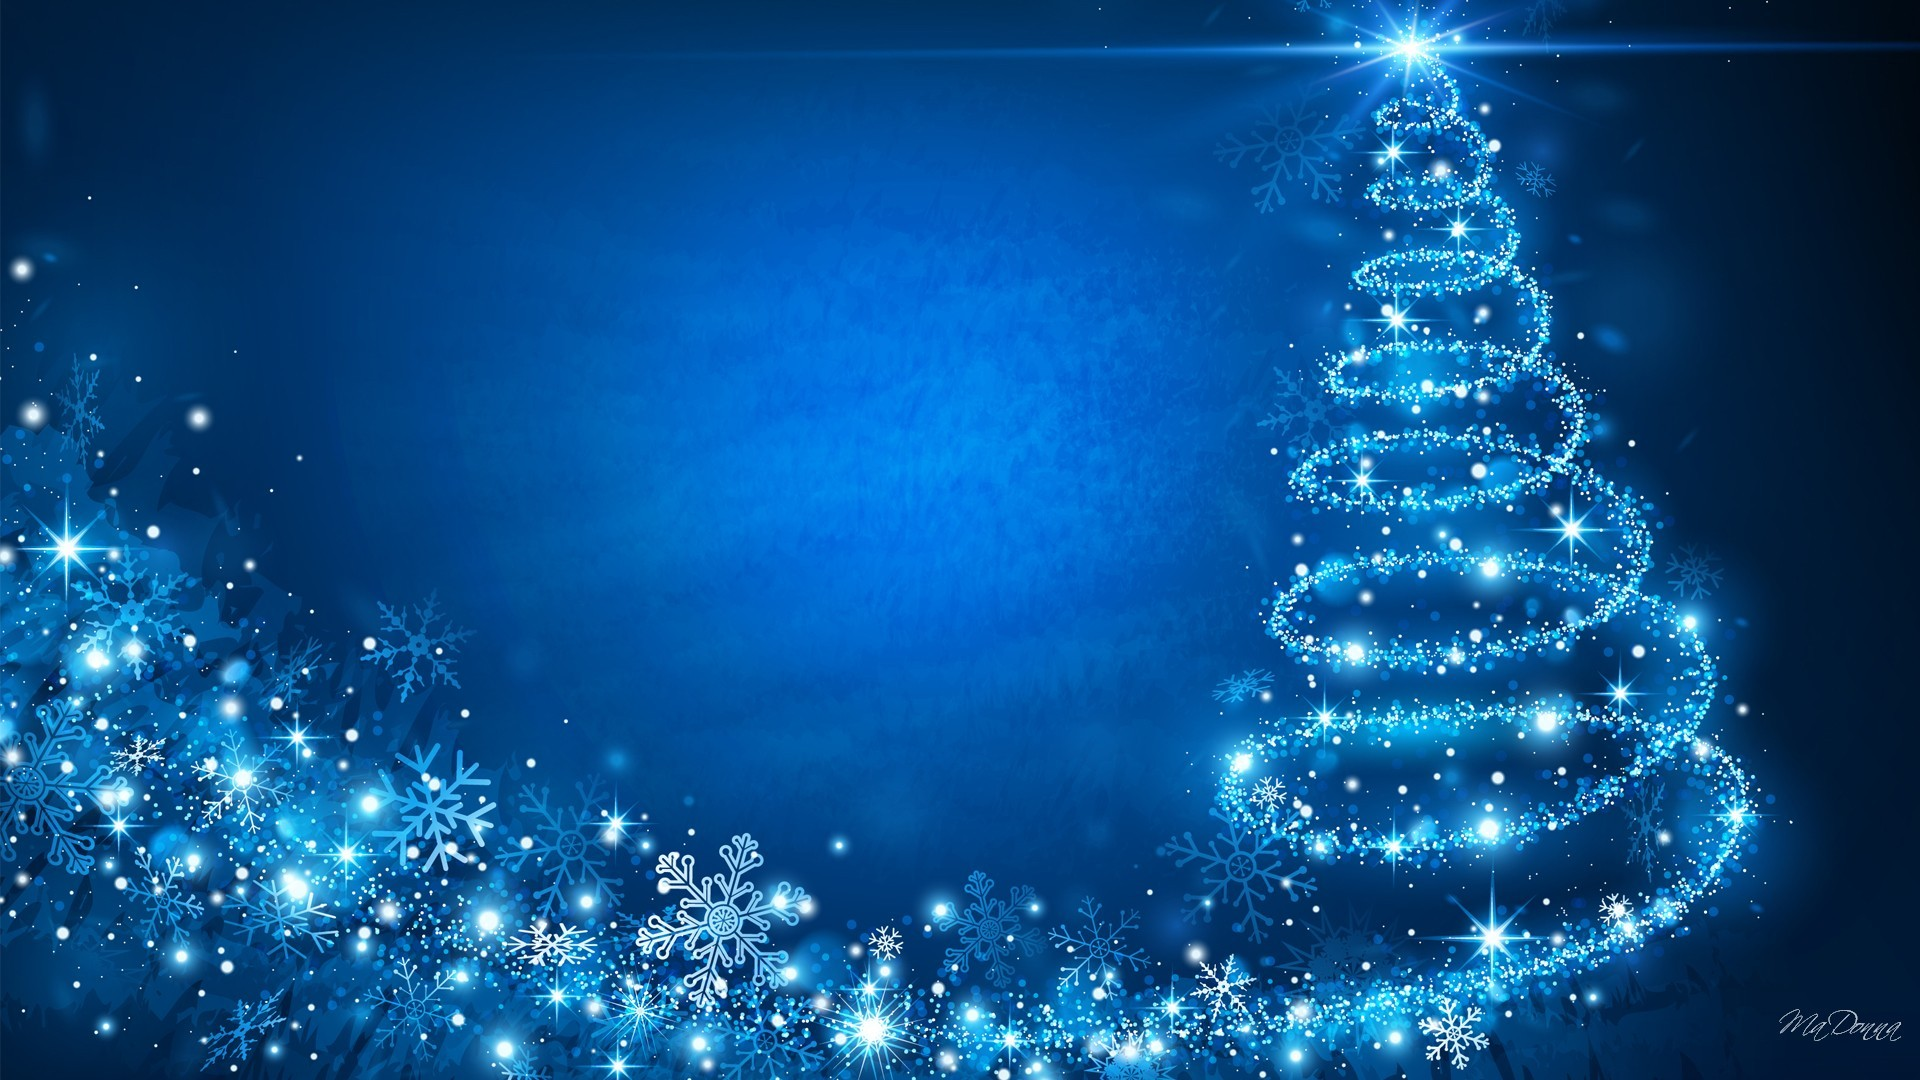 christmas background images download free awesome full hd